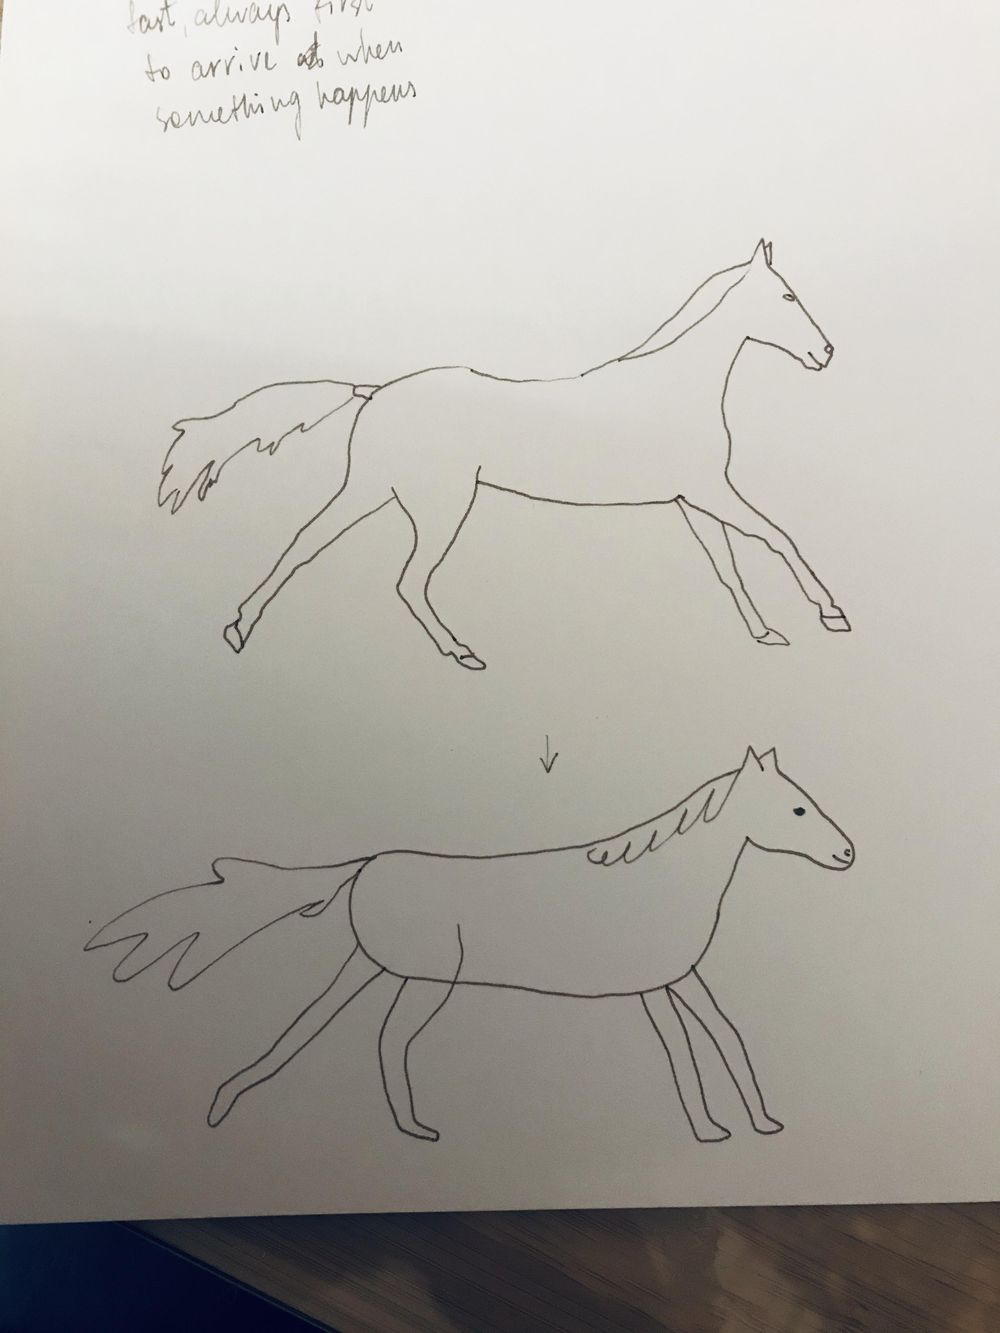 My horse - image 1 - student project